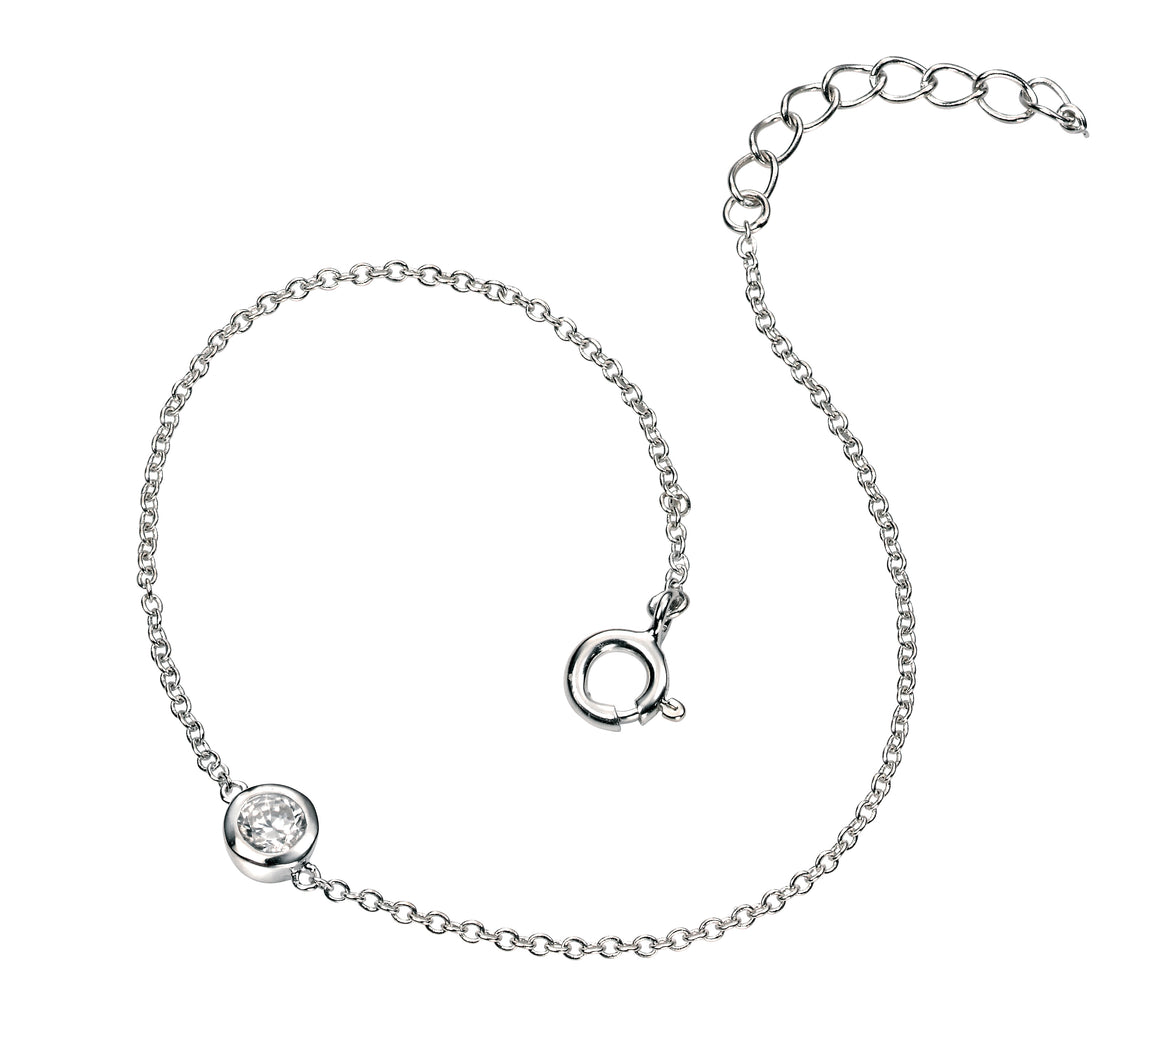 Single Crystal Sterling Silver Bracelet